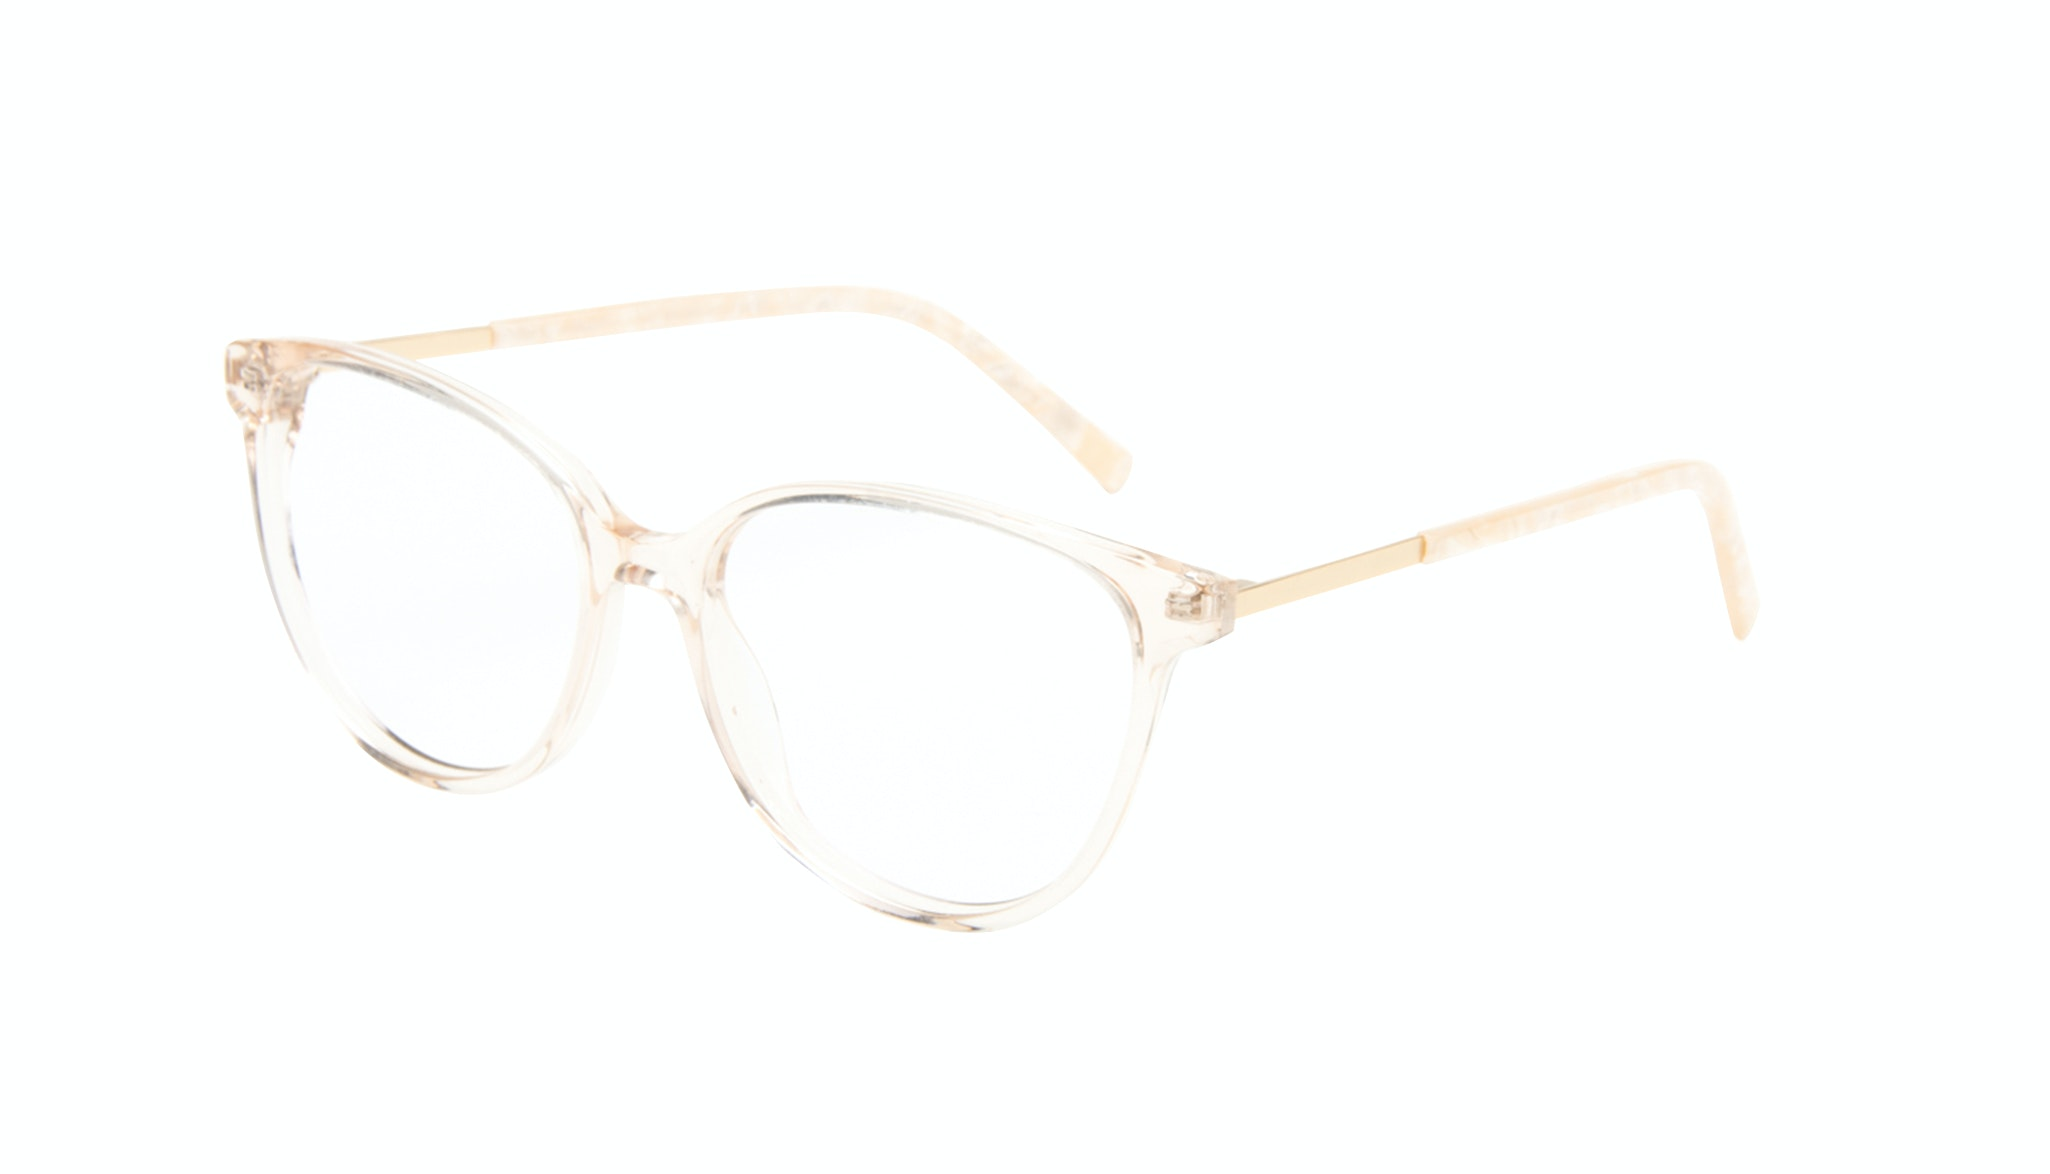 Affordable Fashion Glasses Round Eyeglasses Women Imagine II Golden Marble Tilt